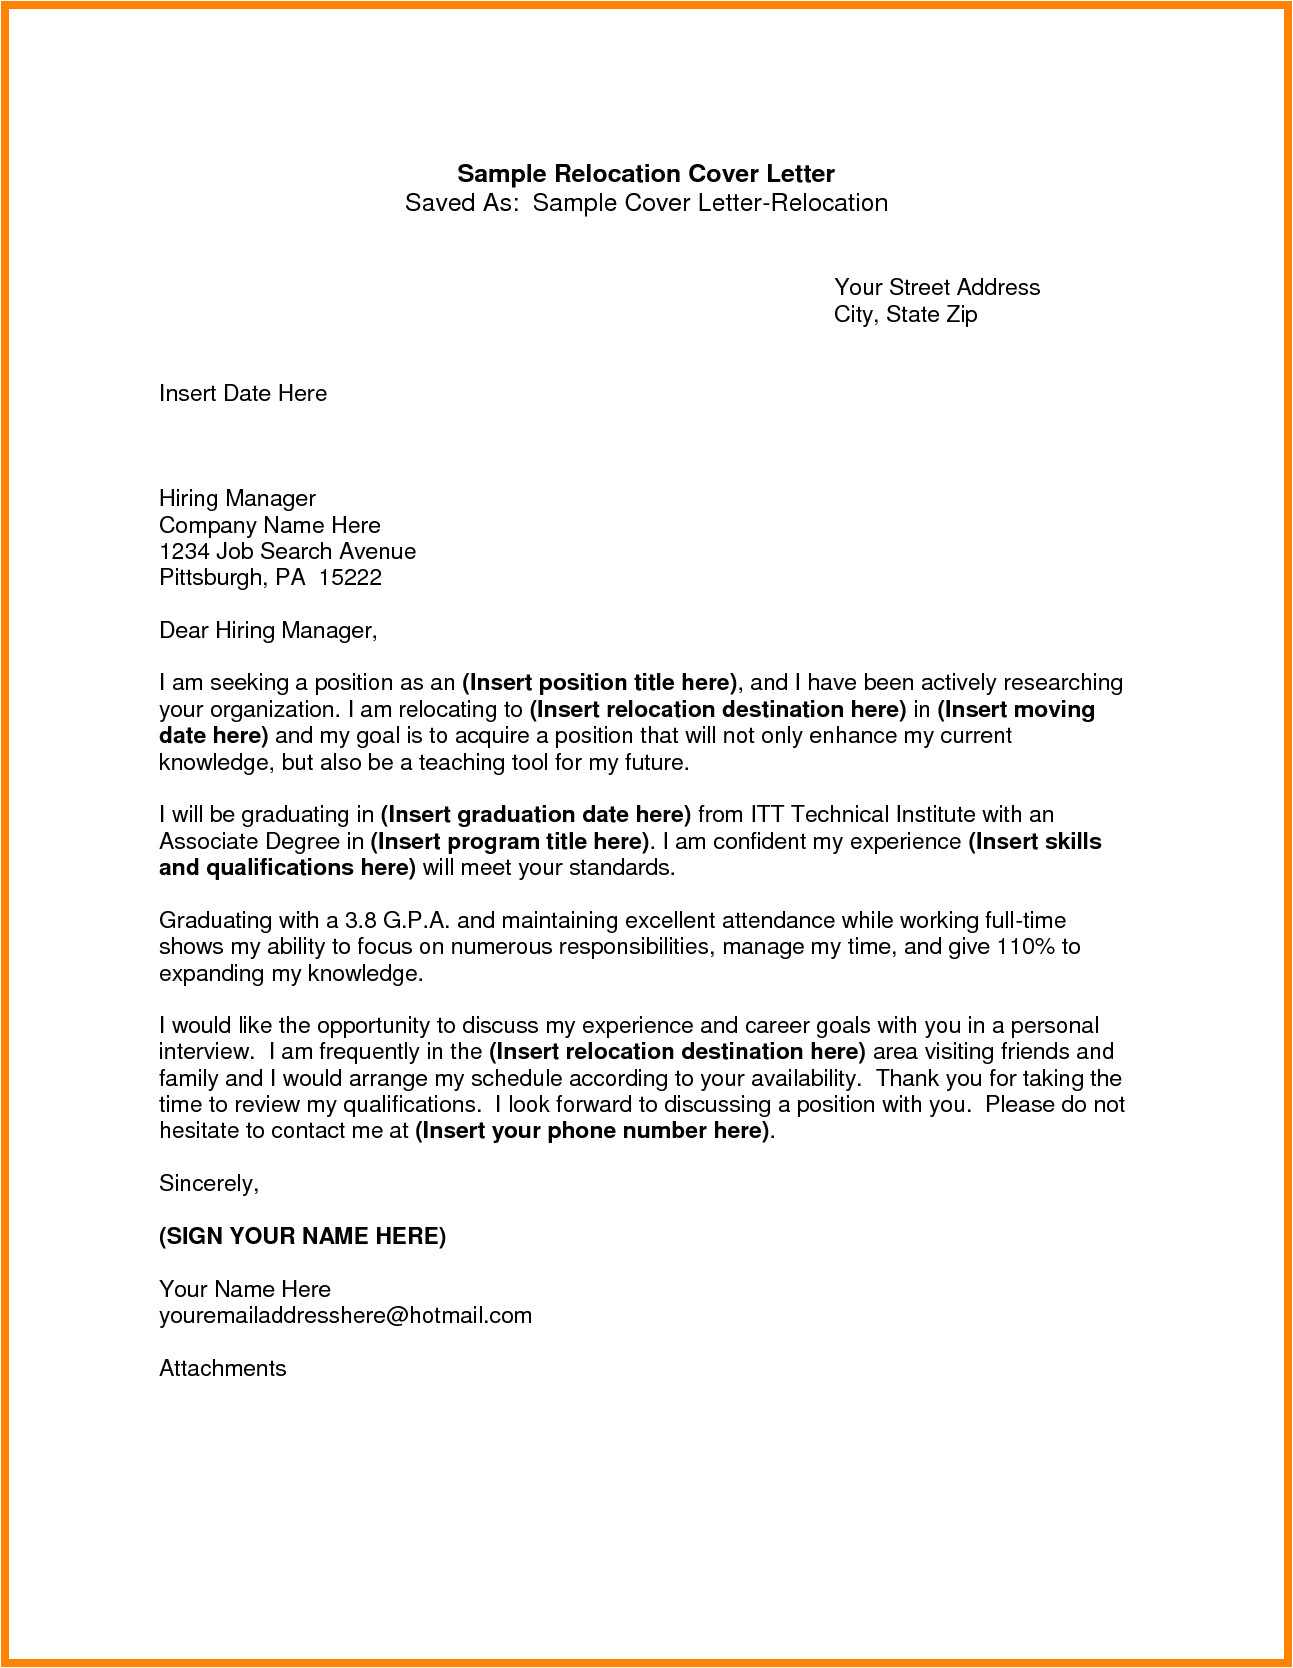 Cover Letter when Relocating 8 Relocation Notice Template Appeal Leter